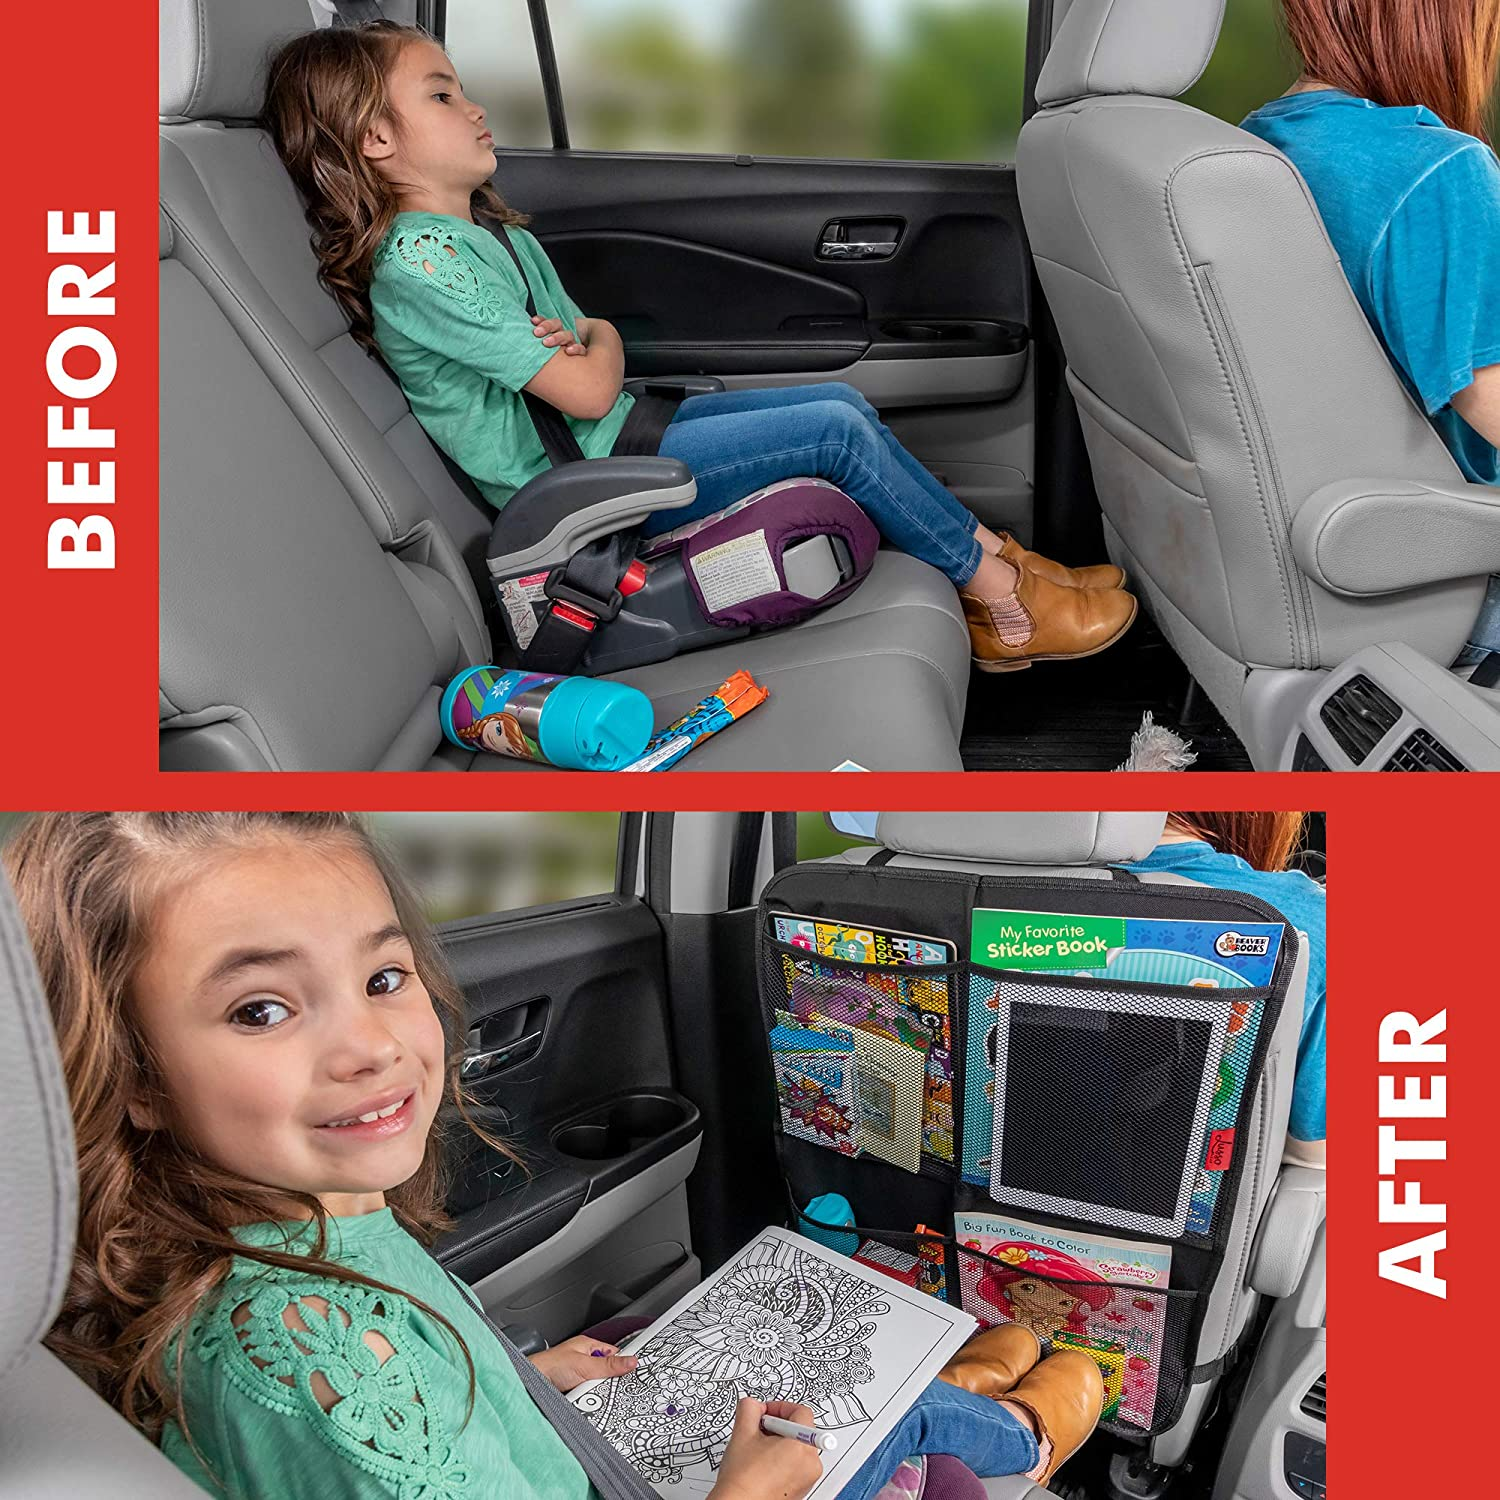 Premium Waterproof Fabric Kick Mats - Car Seat Back Protectors with Odor Free Reinforced Corners to Prevent Sag and 4 Mesh Pockets for Large Storage 2 Pack